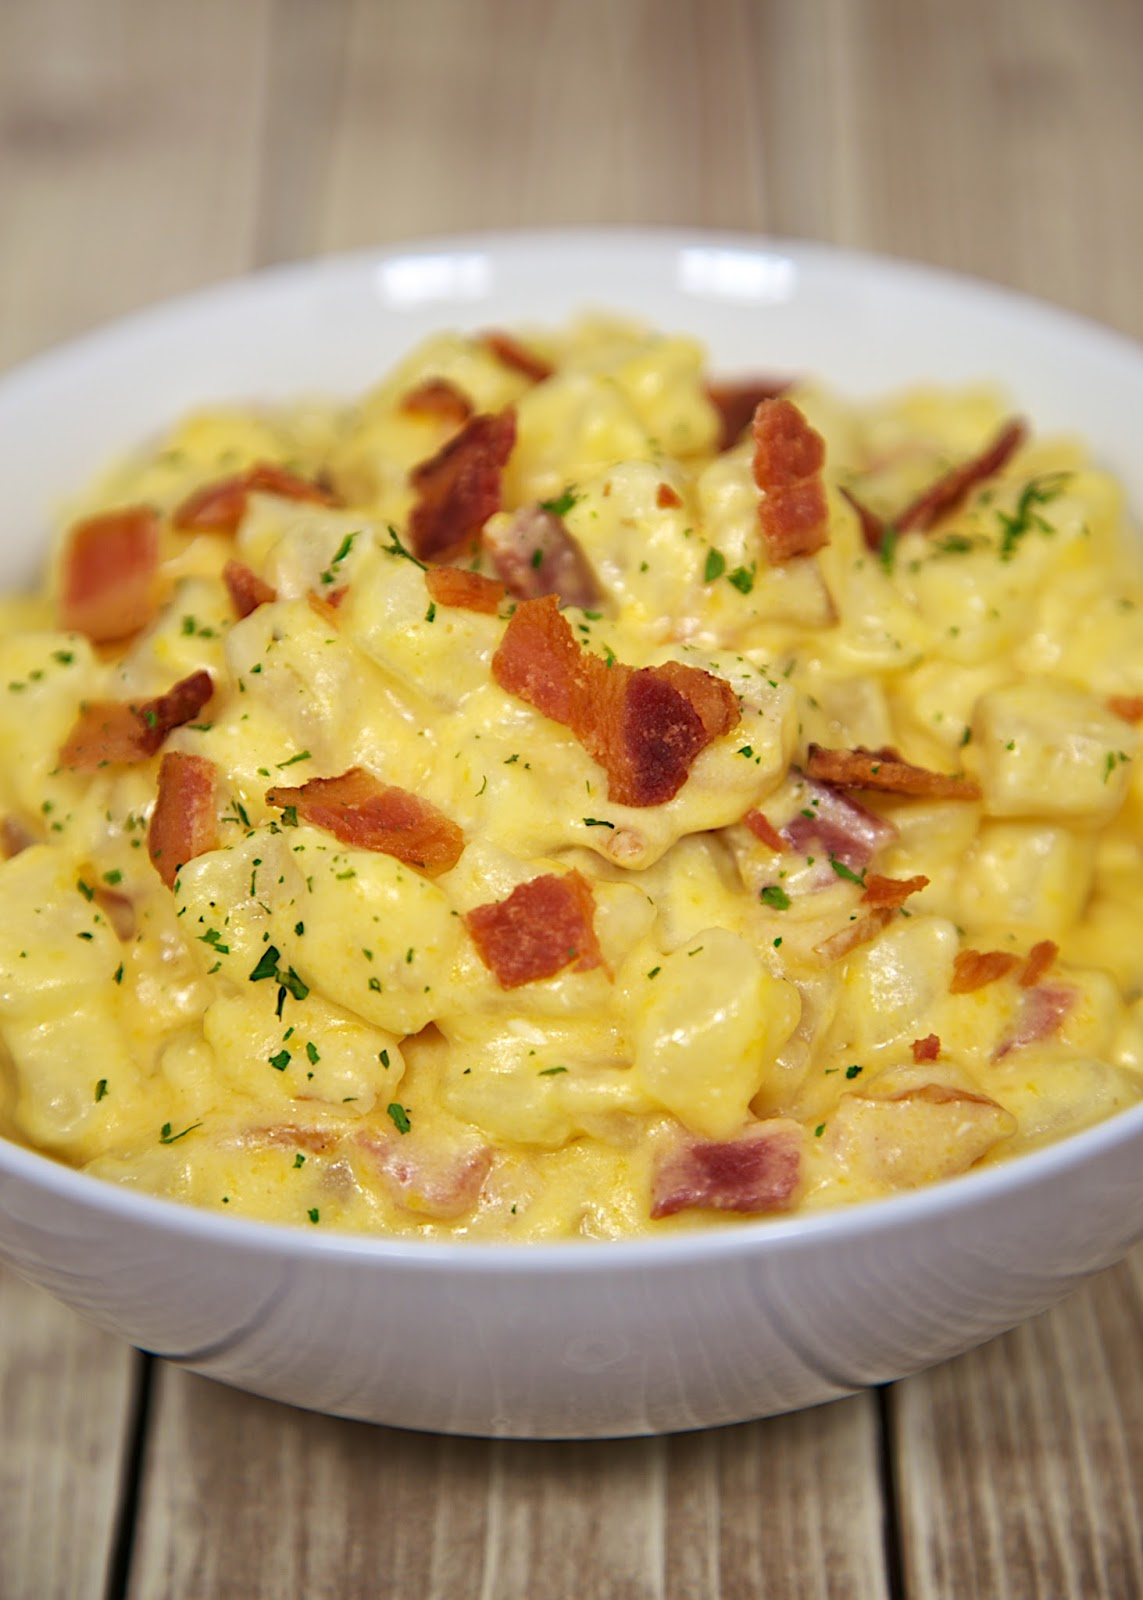 Slow Cooker Cheesy Bacon Potatoes Recipe - frozen hash browns, cheese, bacon slow cook all day for a delicious side dish!